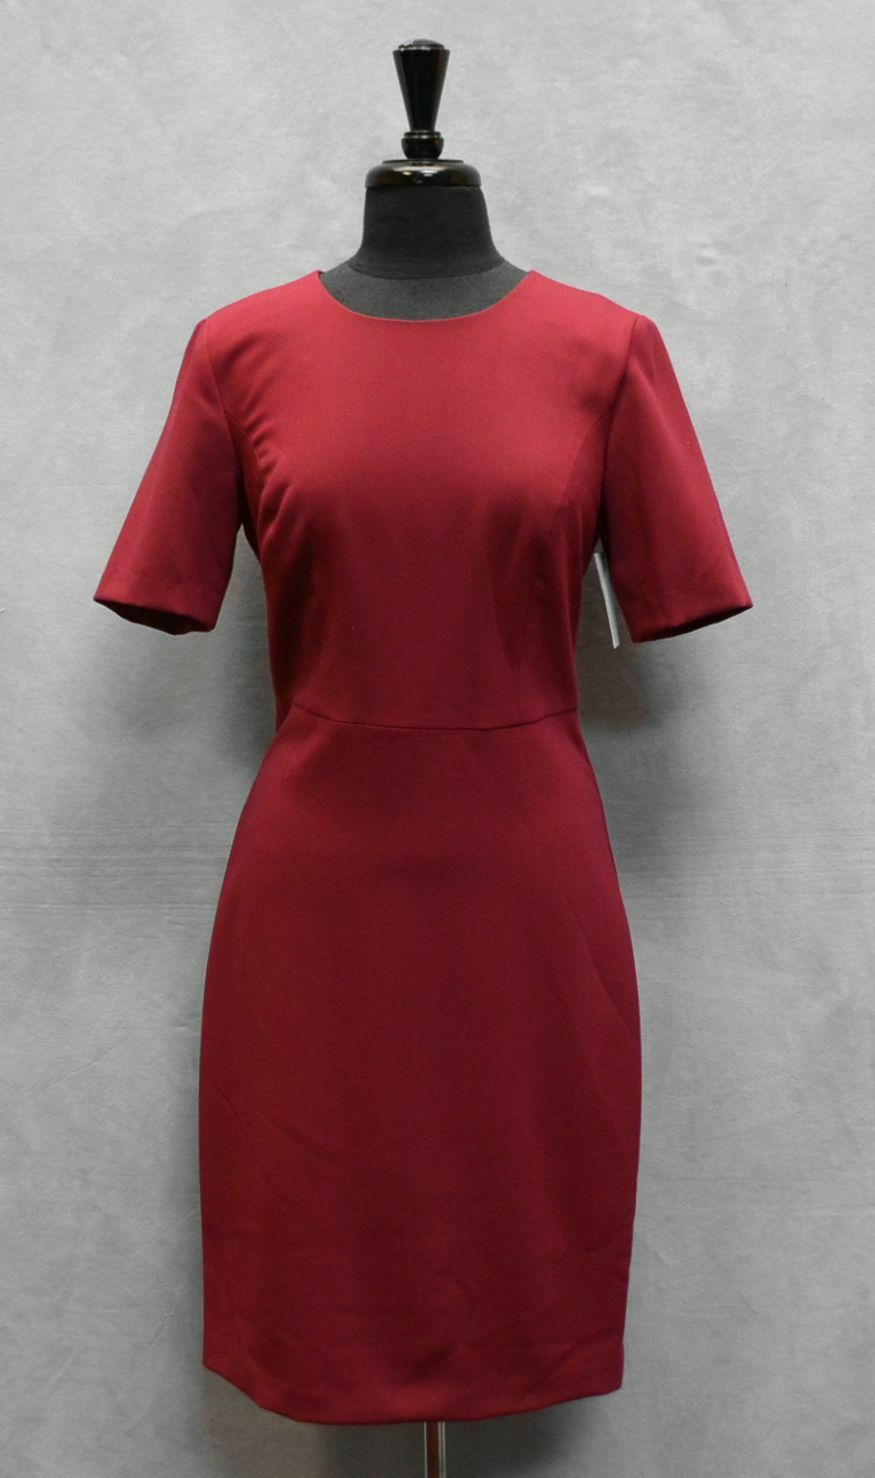 C0 NWT TRINA TURK Diamante Garnet Elbow Cap Sleeve Sheath Dress Größe 10